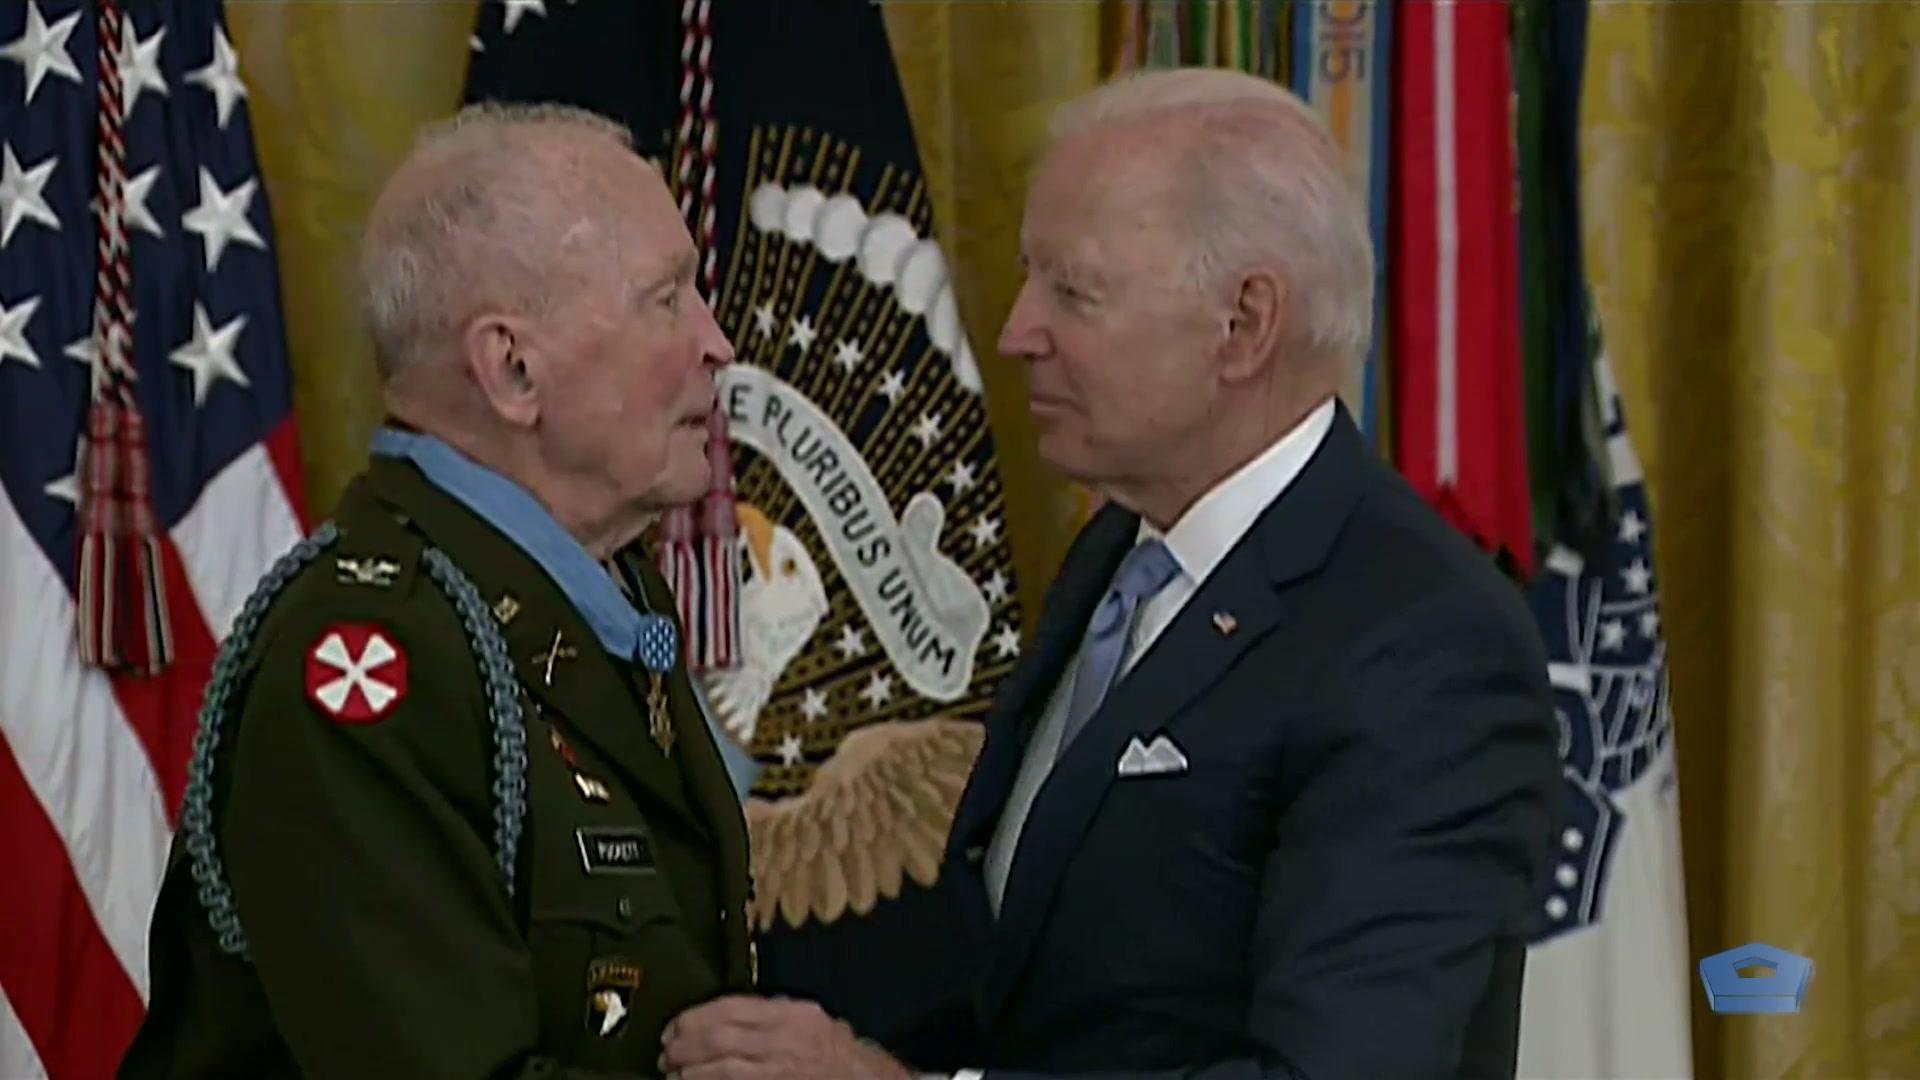 President Joe Biden presents the Medal of Honor to retired Army Col. Ralph Puckett Jr. for conspicuous gallantry during the Korean War, May 21, 2021. South Korean President Moon Jae-in is in attendance.